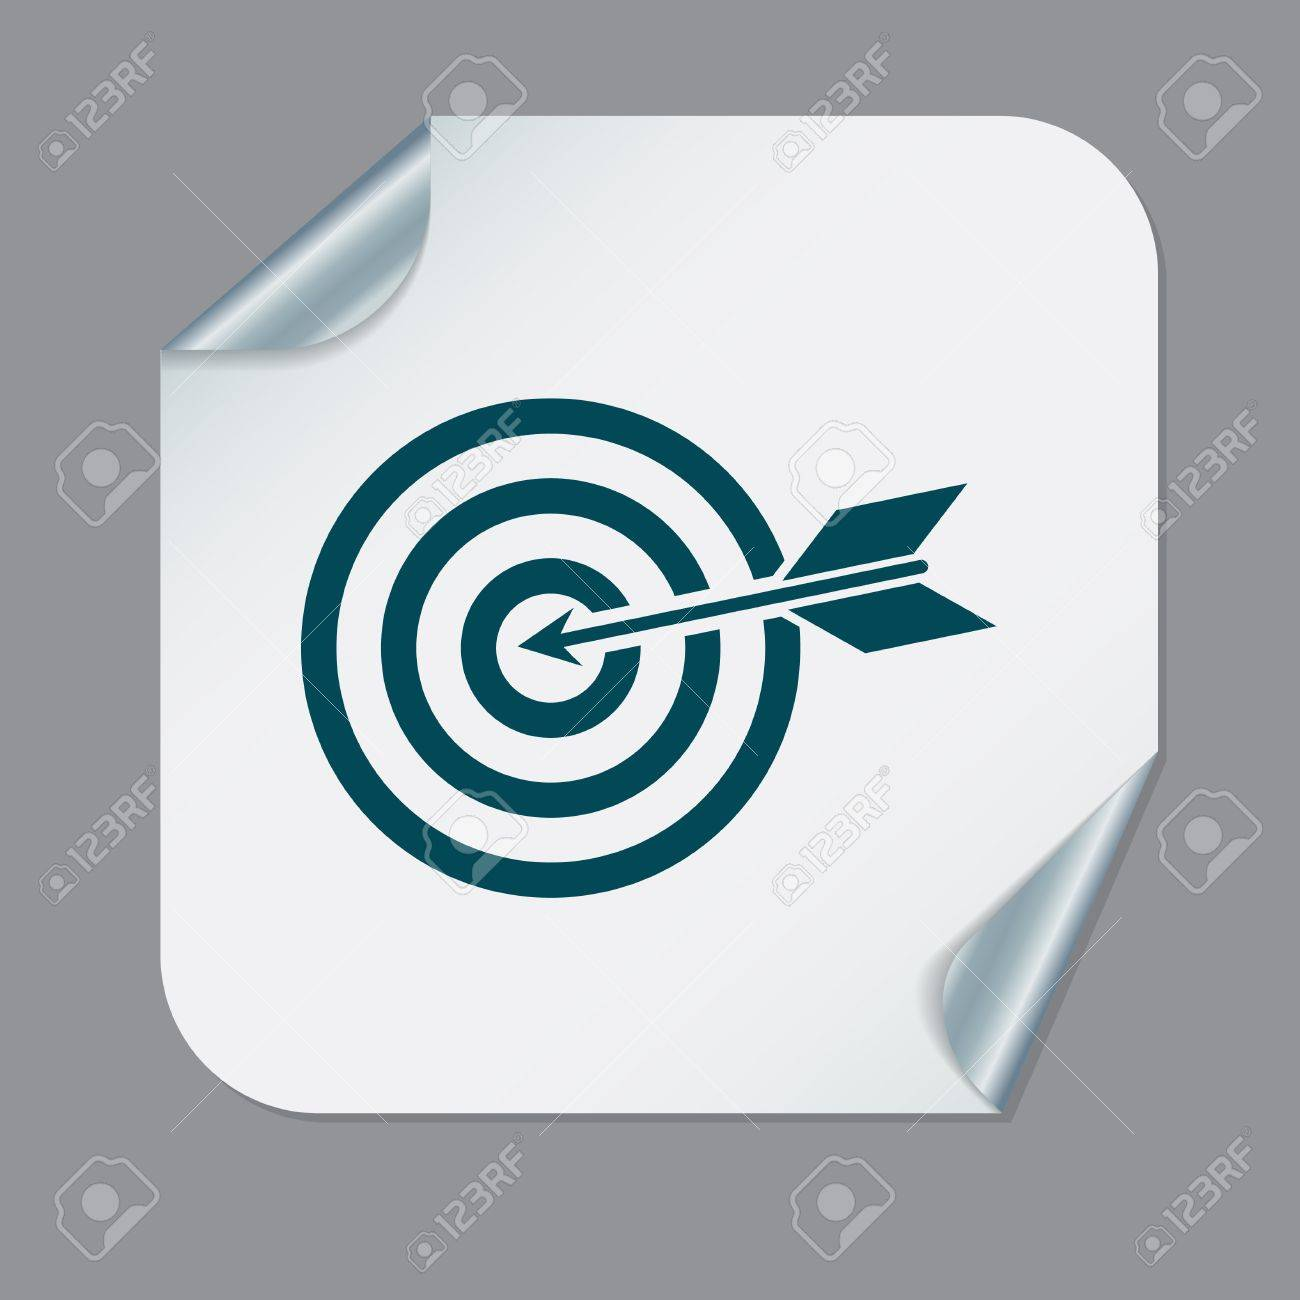 Target symbol sporty character hit the target royalty free target symbol sporty character hit the target stock vector 40436017 buycottarizona Image collections